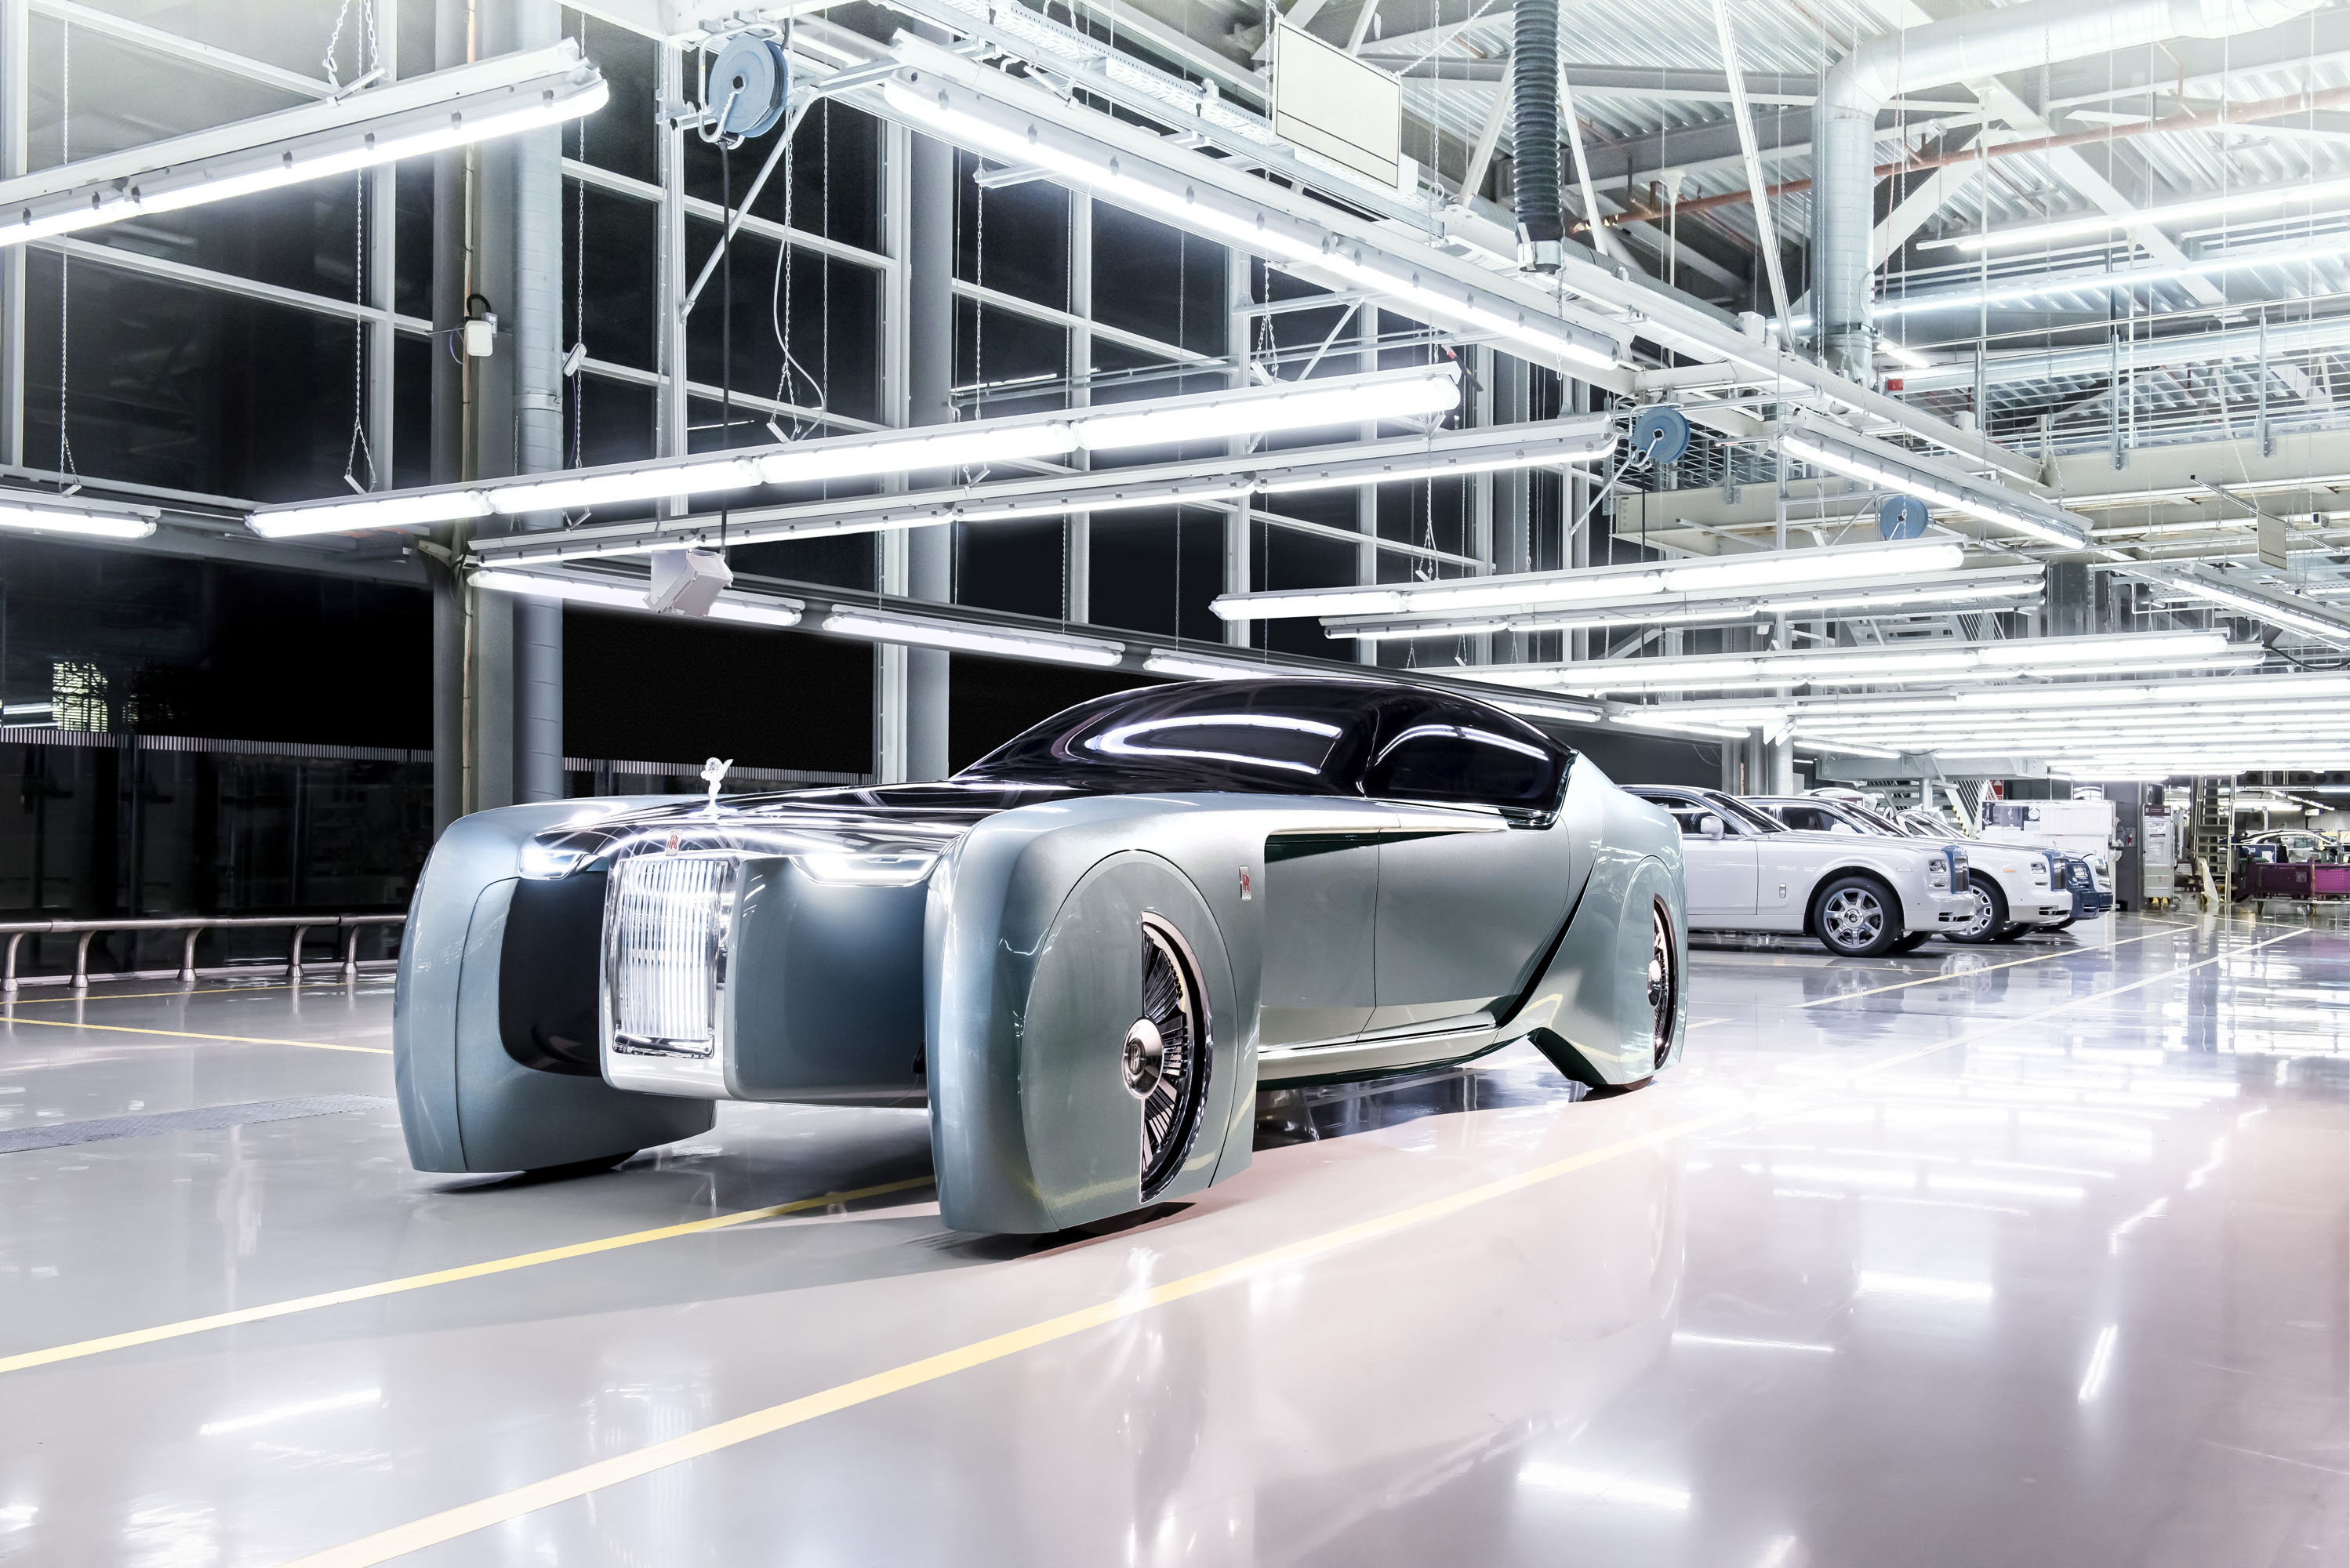 Rolls-Royce unveils its vision of future cars